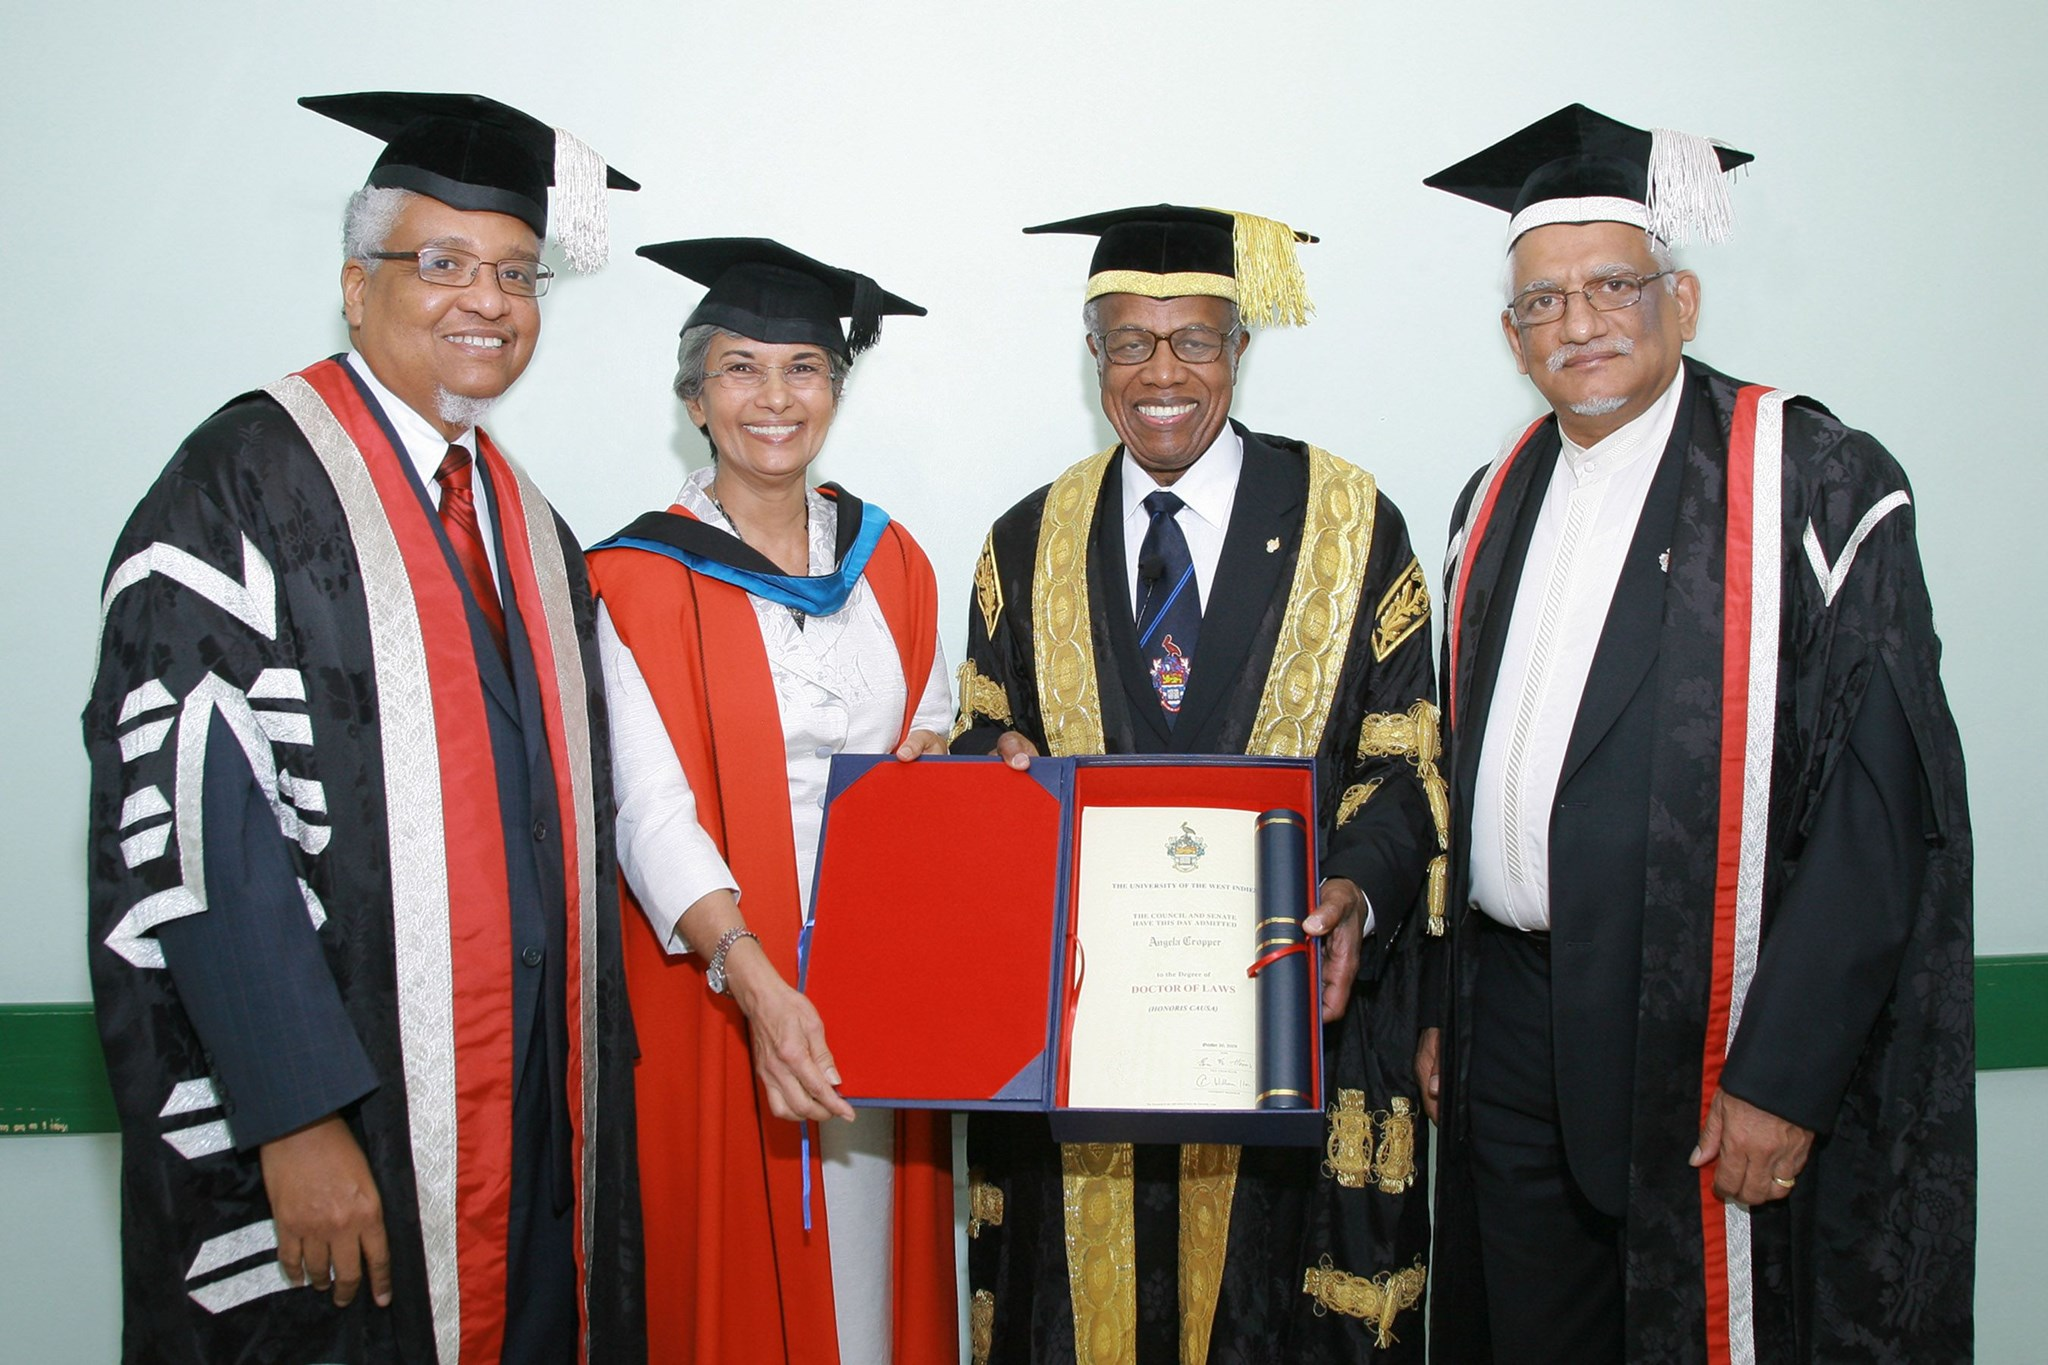 Angela Cropper - UWI Honorary Graduand (2009)